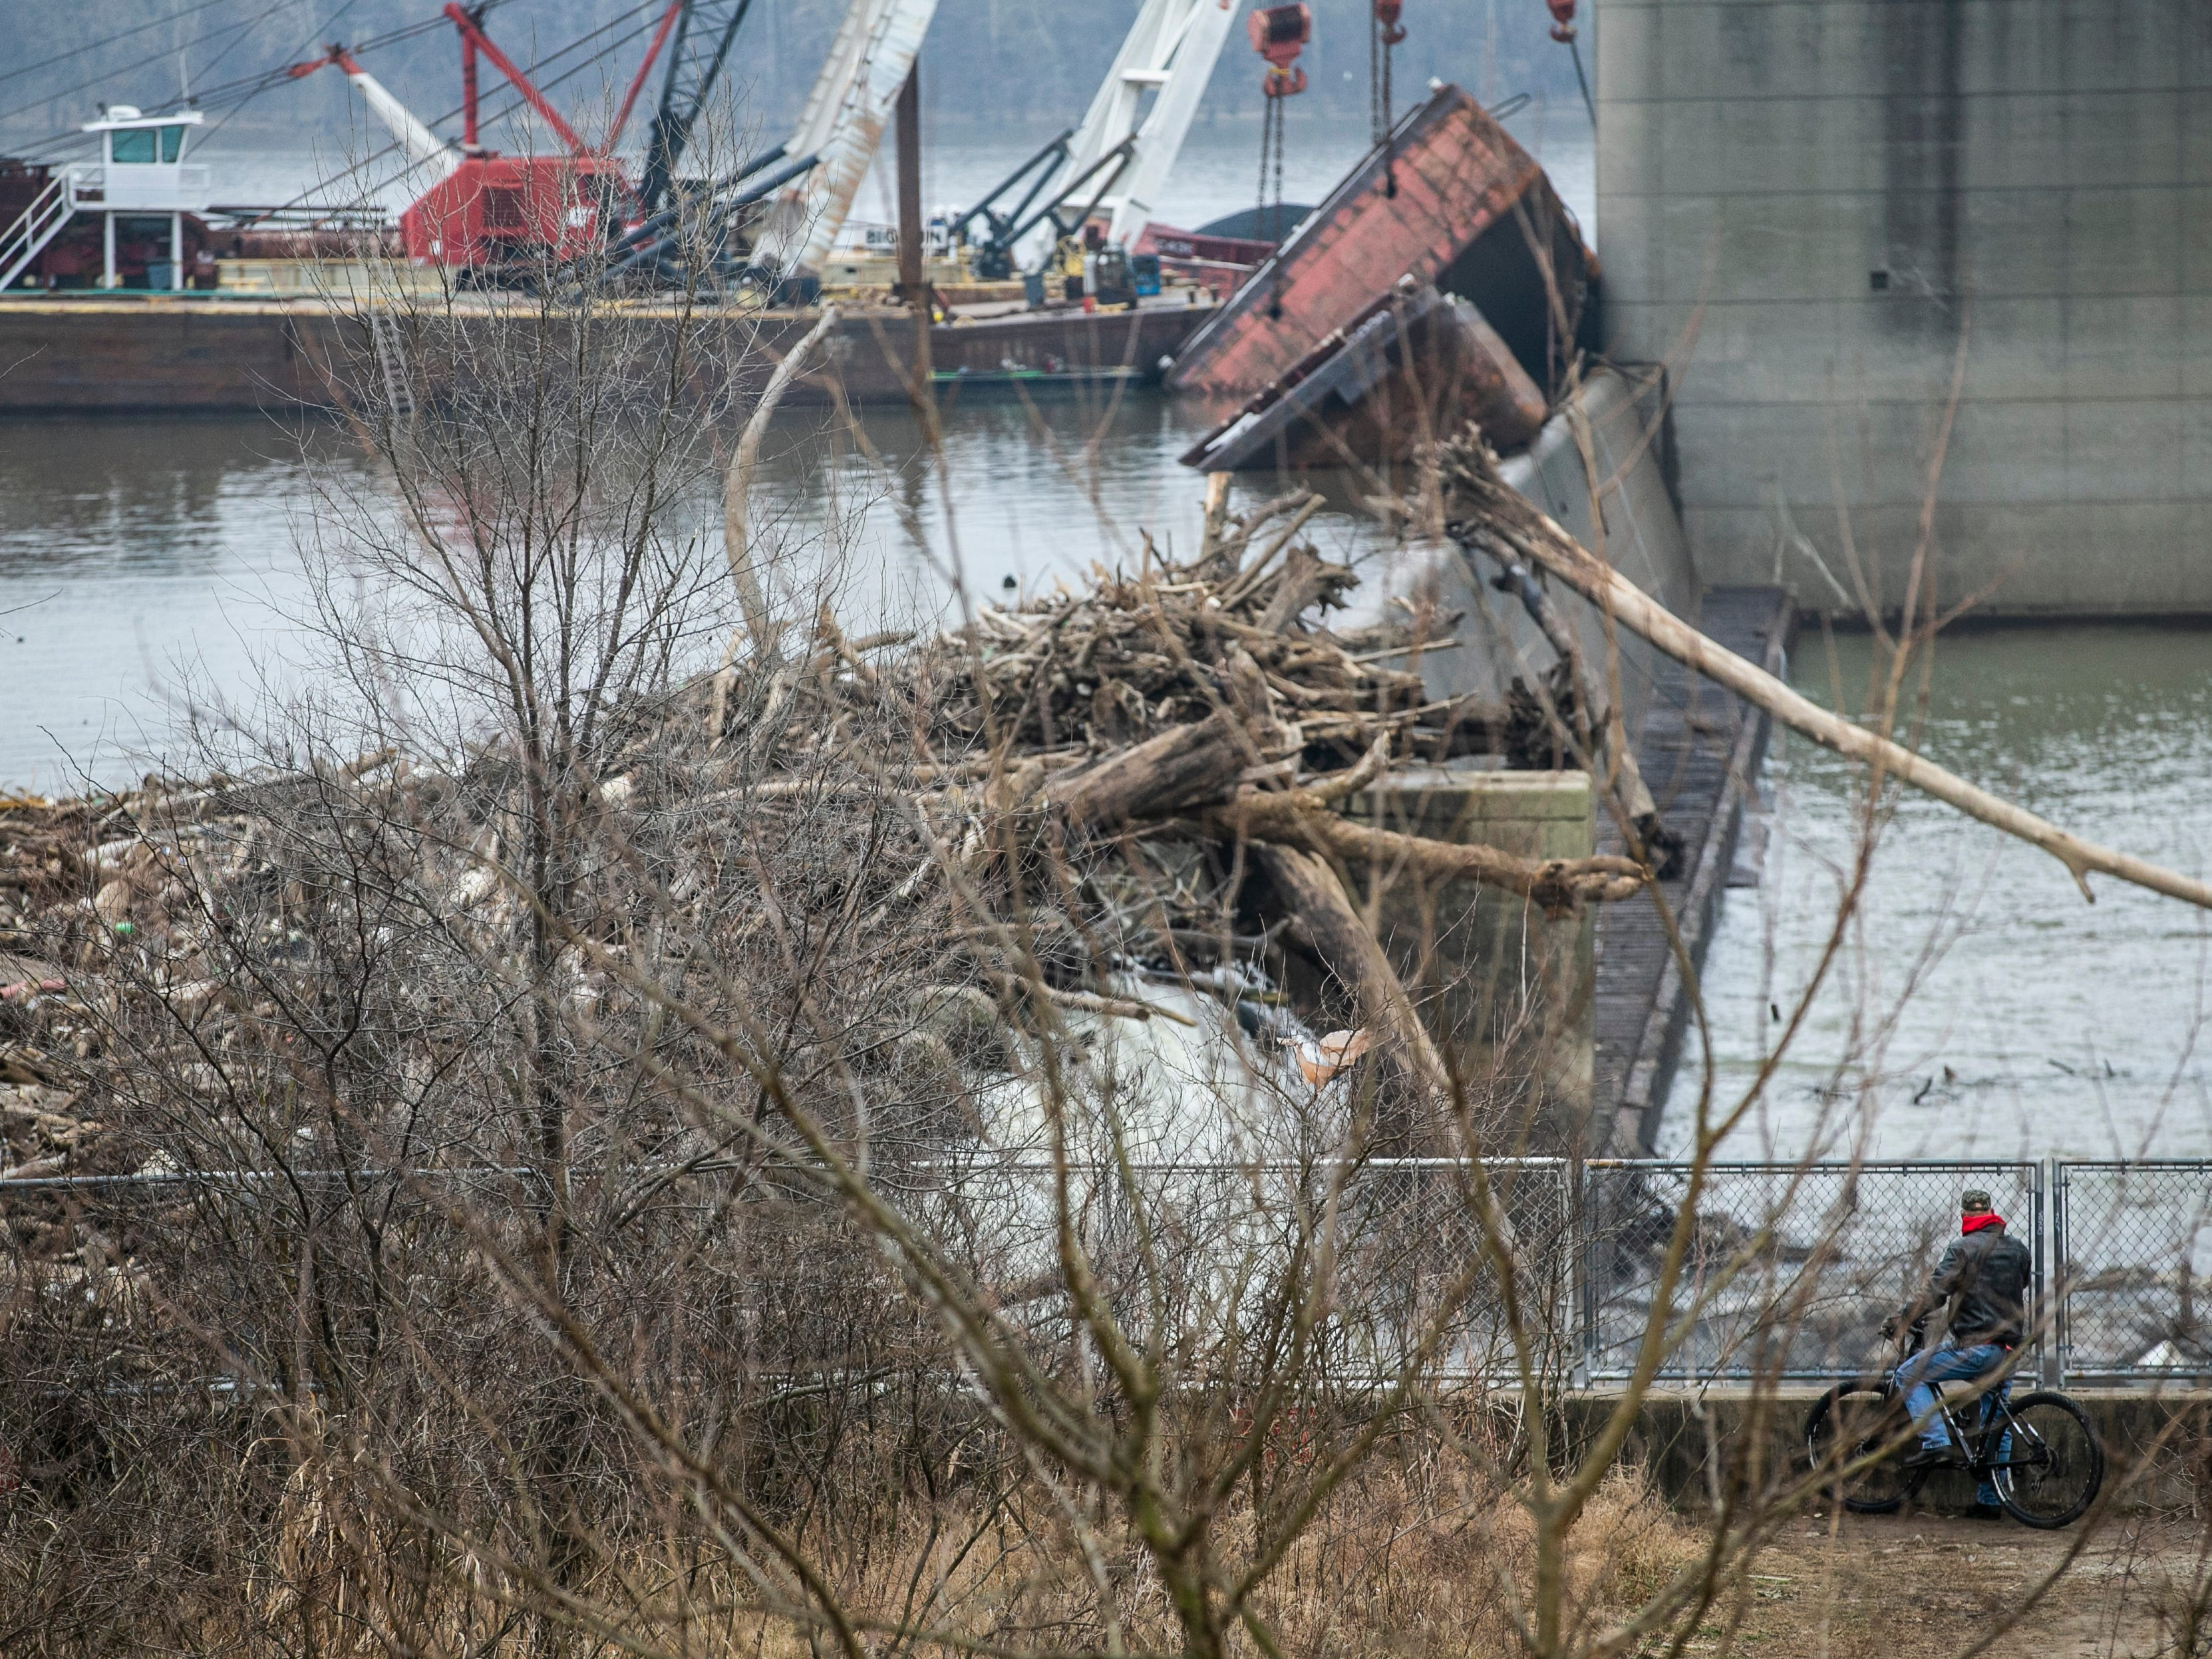 Work still continues on barge recovery near the dam at the Falls of the Ohio Wednesday, January 16, 2019.